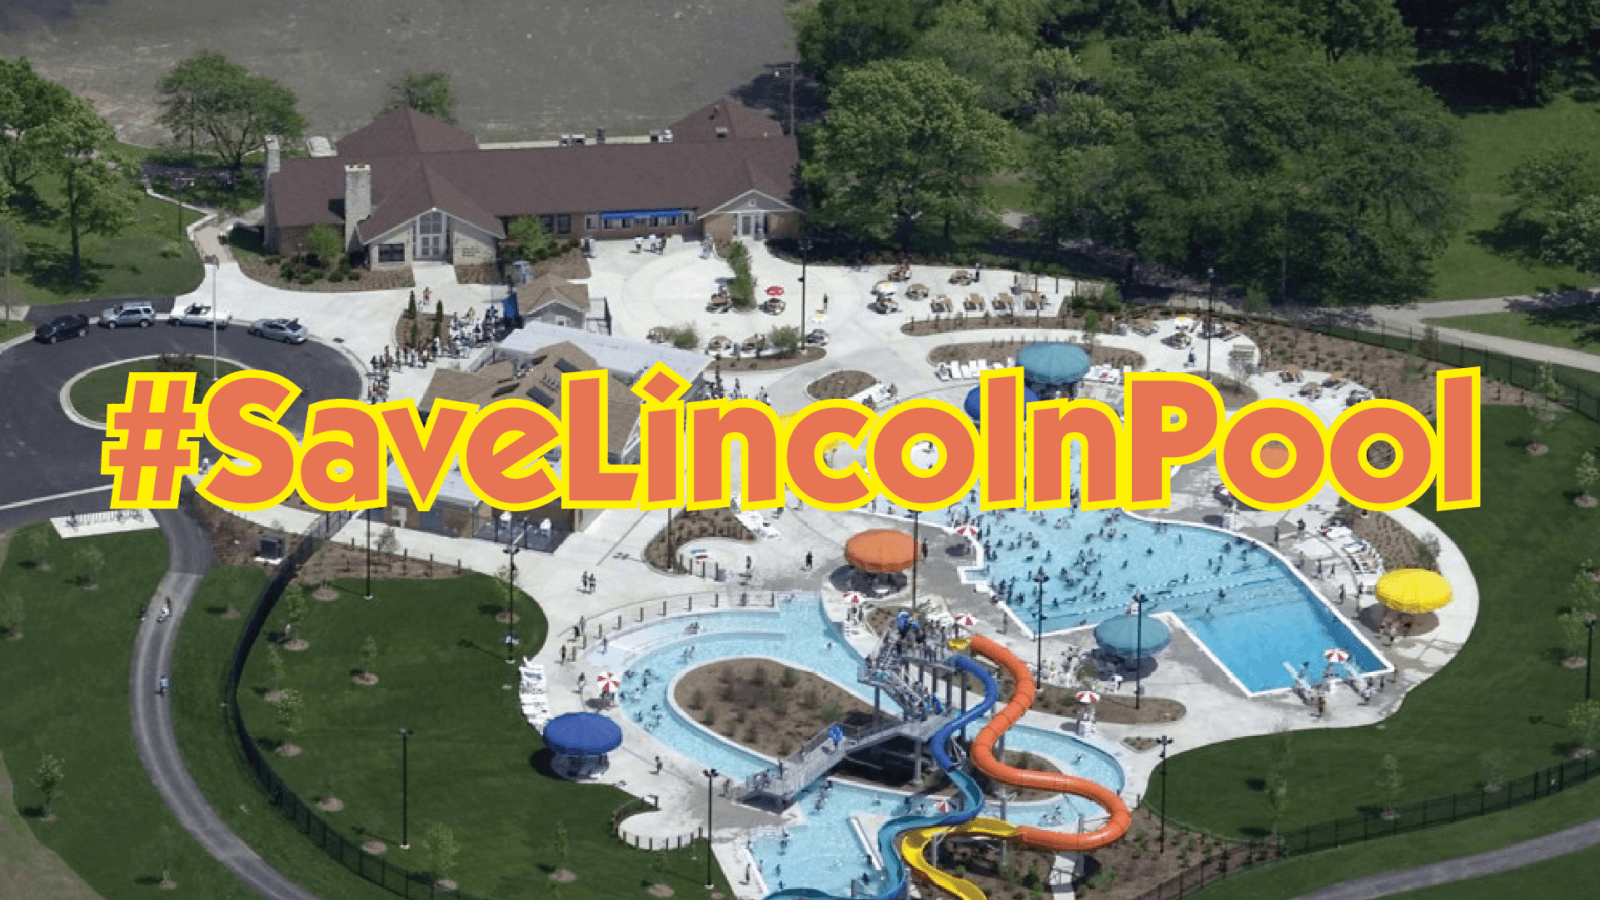 Help Save the Lincoln Park Pool!